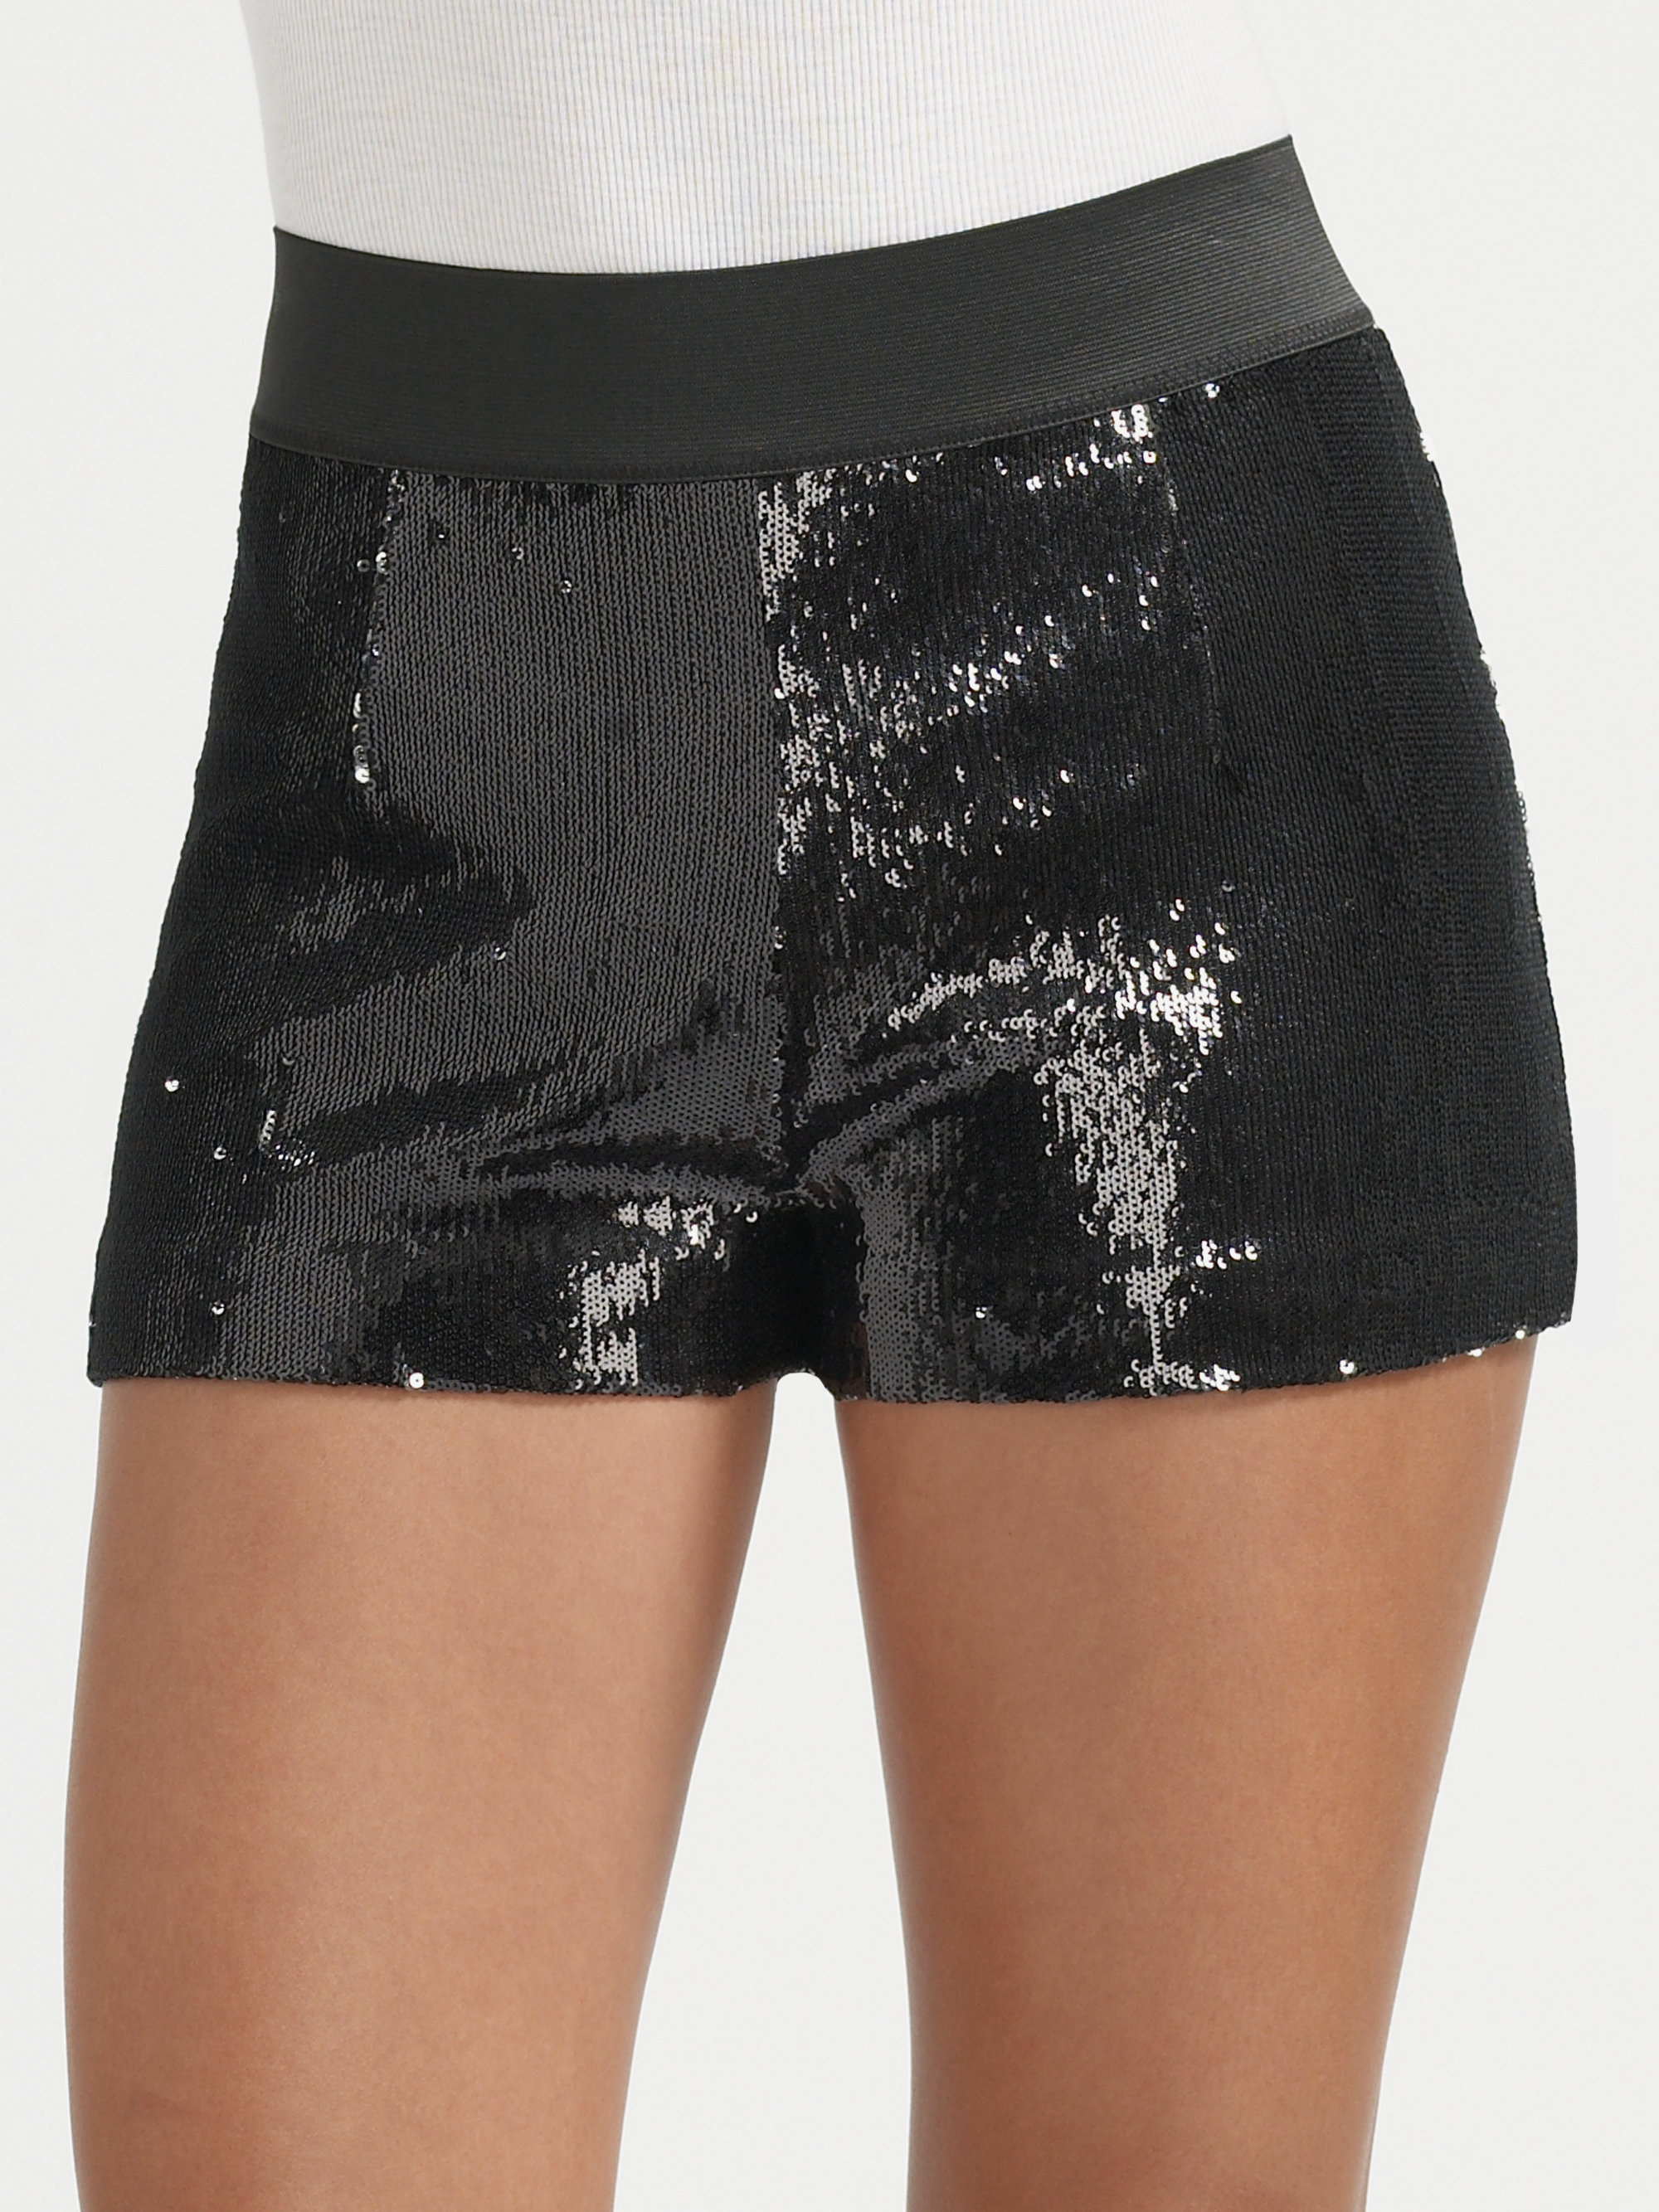 Larok Hot Hot Sequin Shorts in Black (black/silver) | Lyst